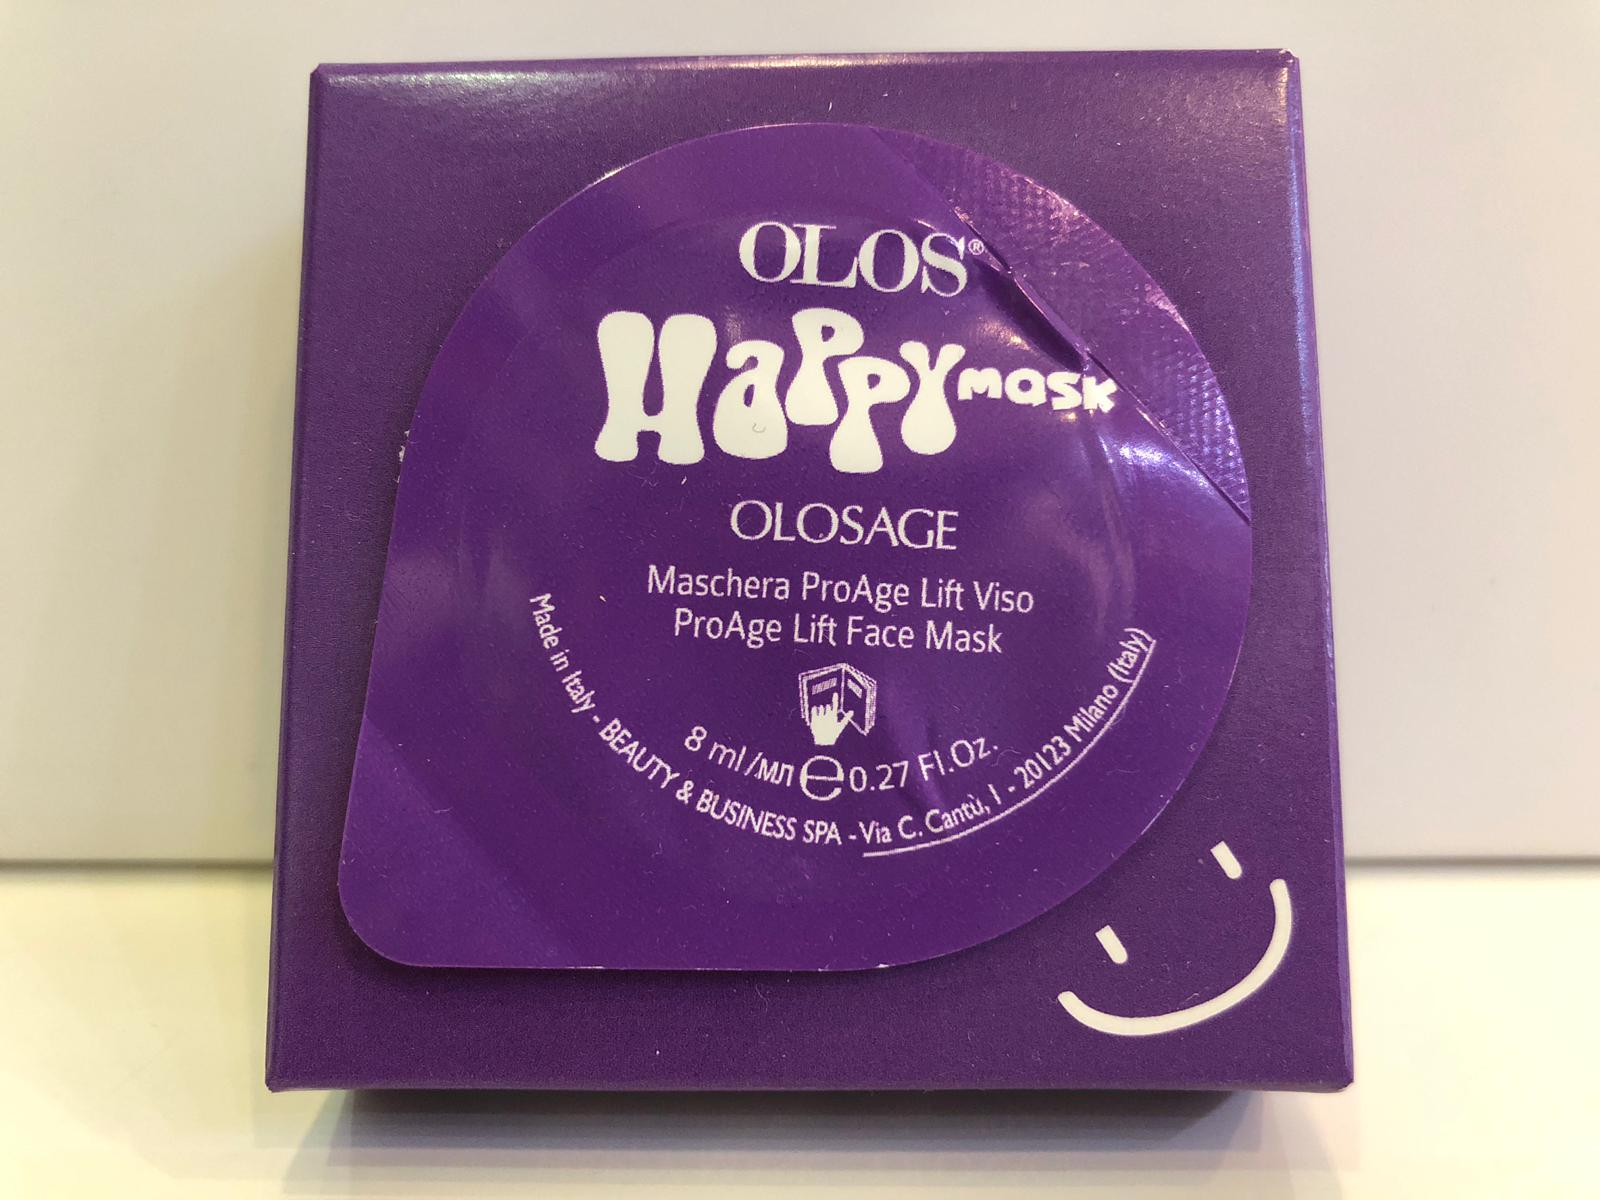 Olos Happy Mask OLOSAGE Maschera ProAge Lift Viso